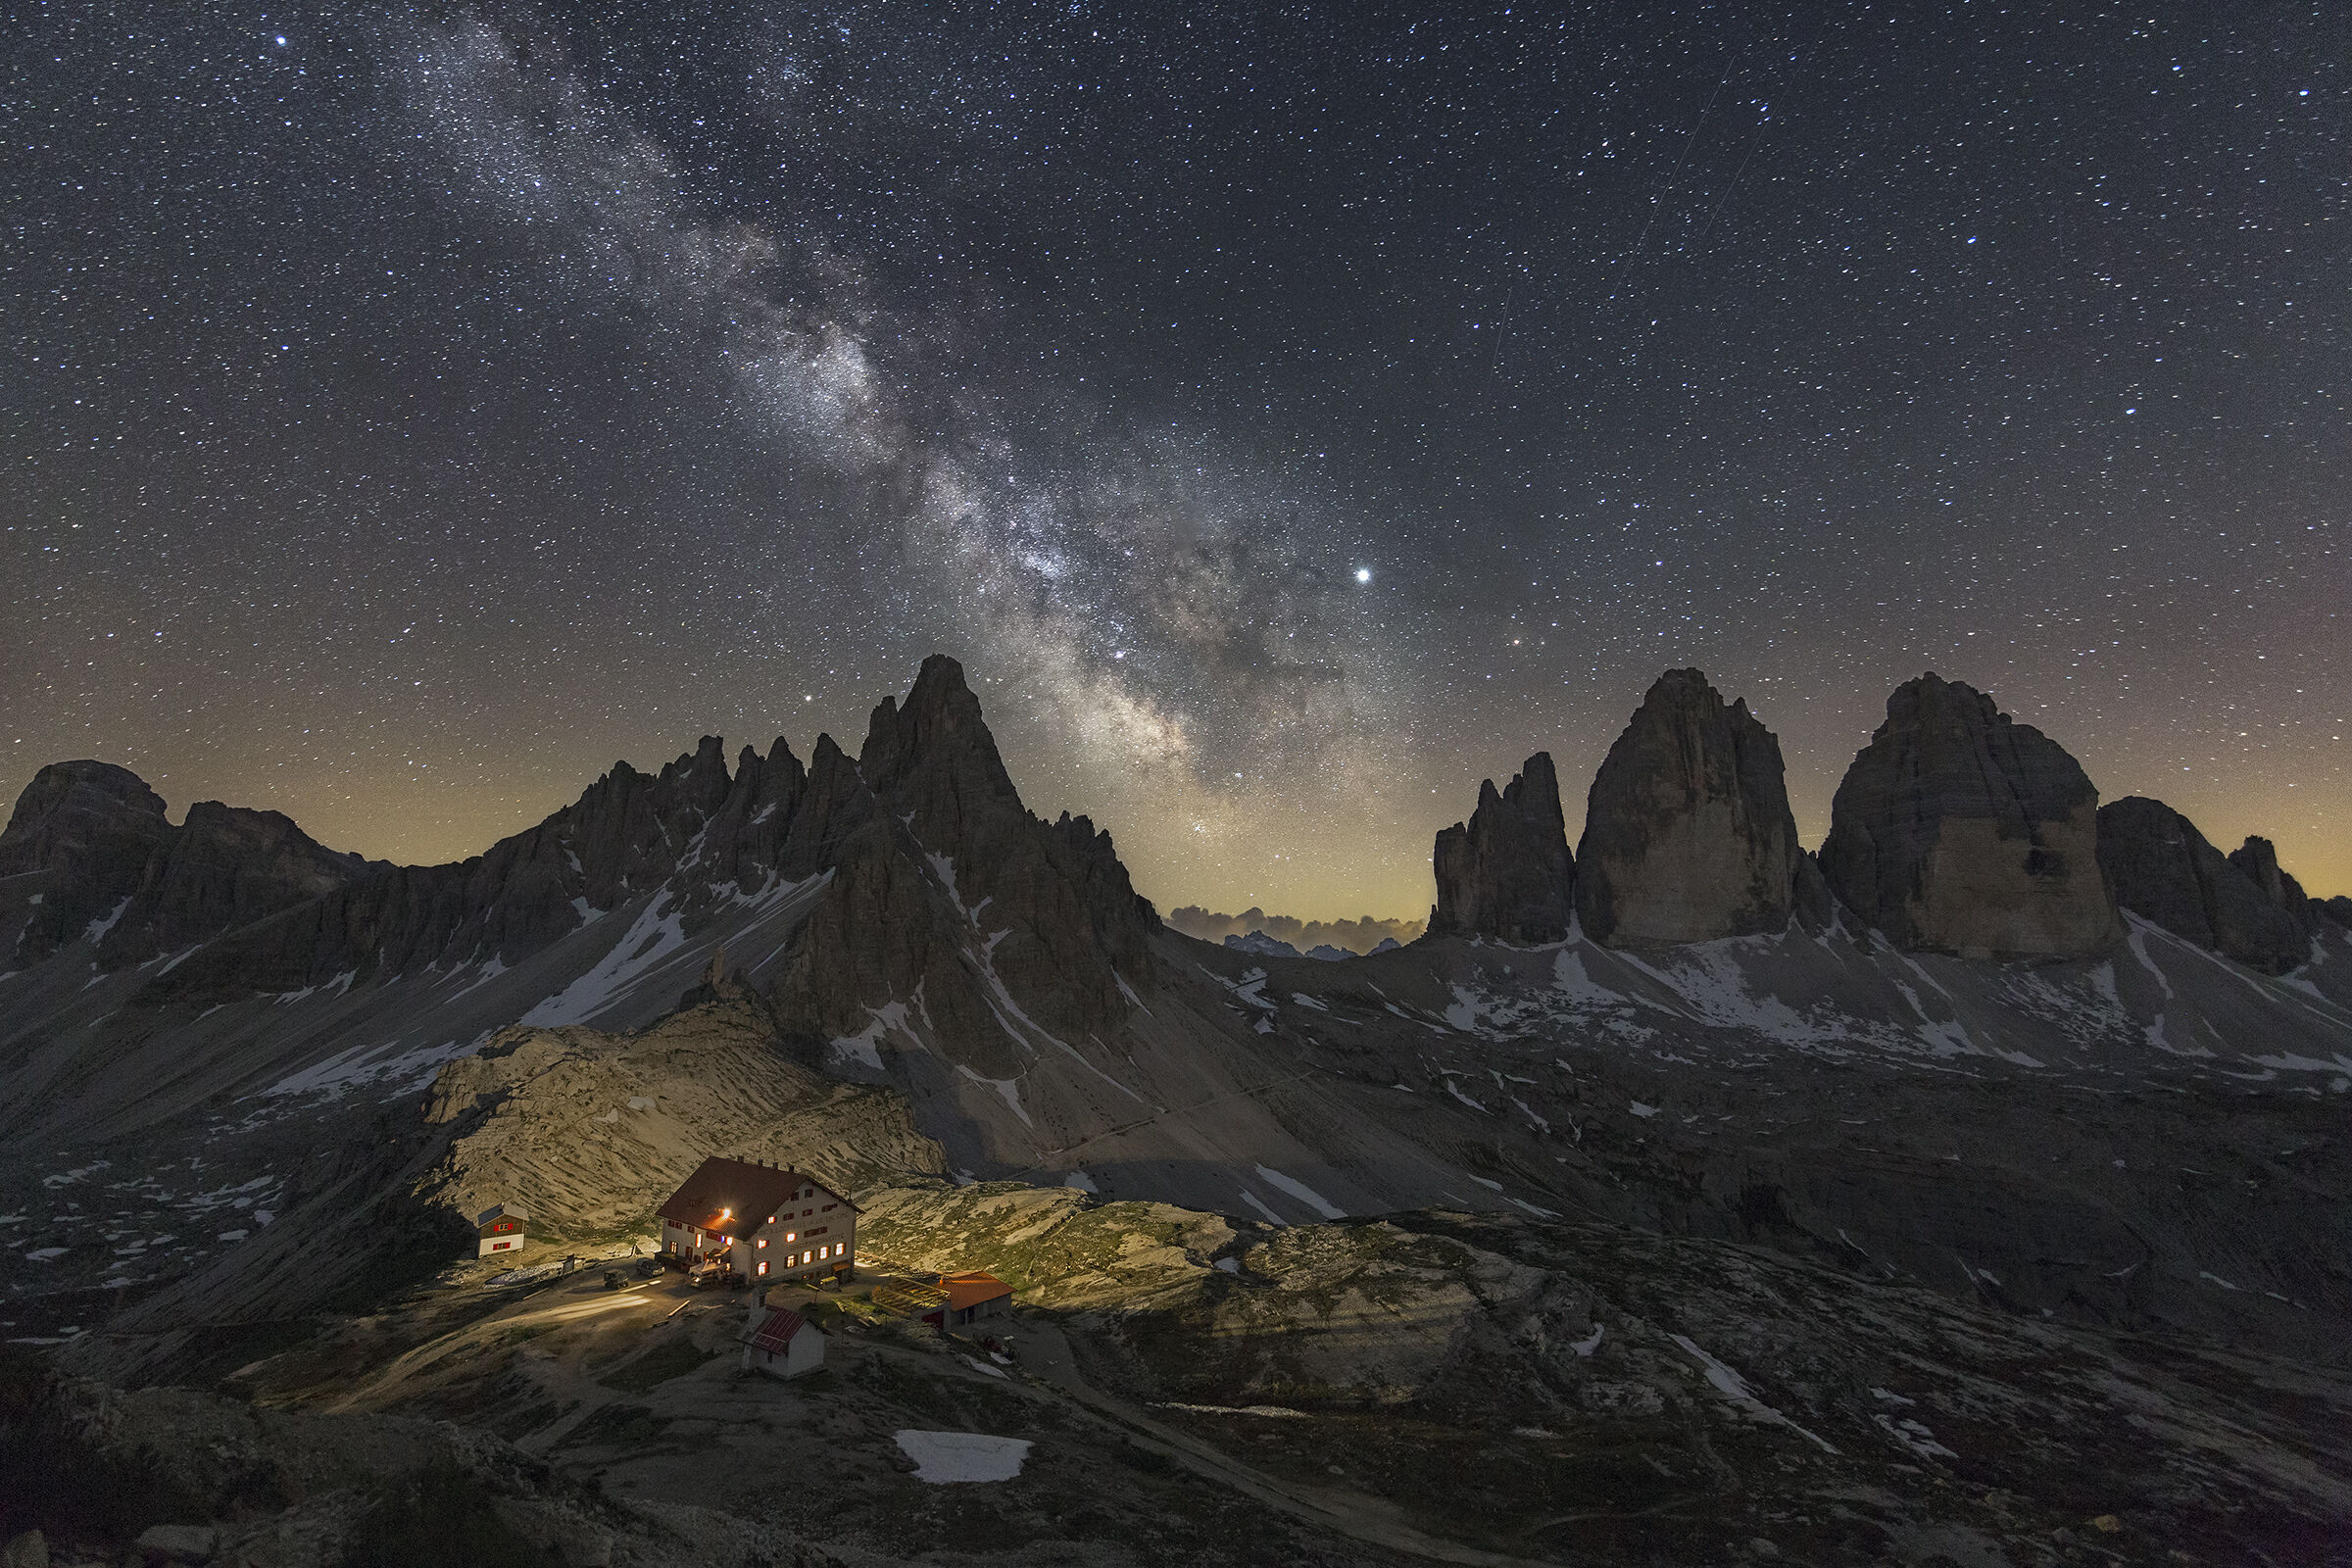 Three Peaks, Milky Way and Paterno...